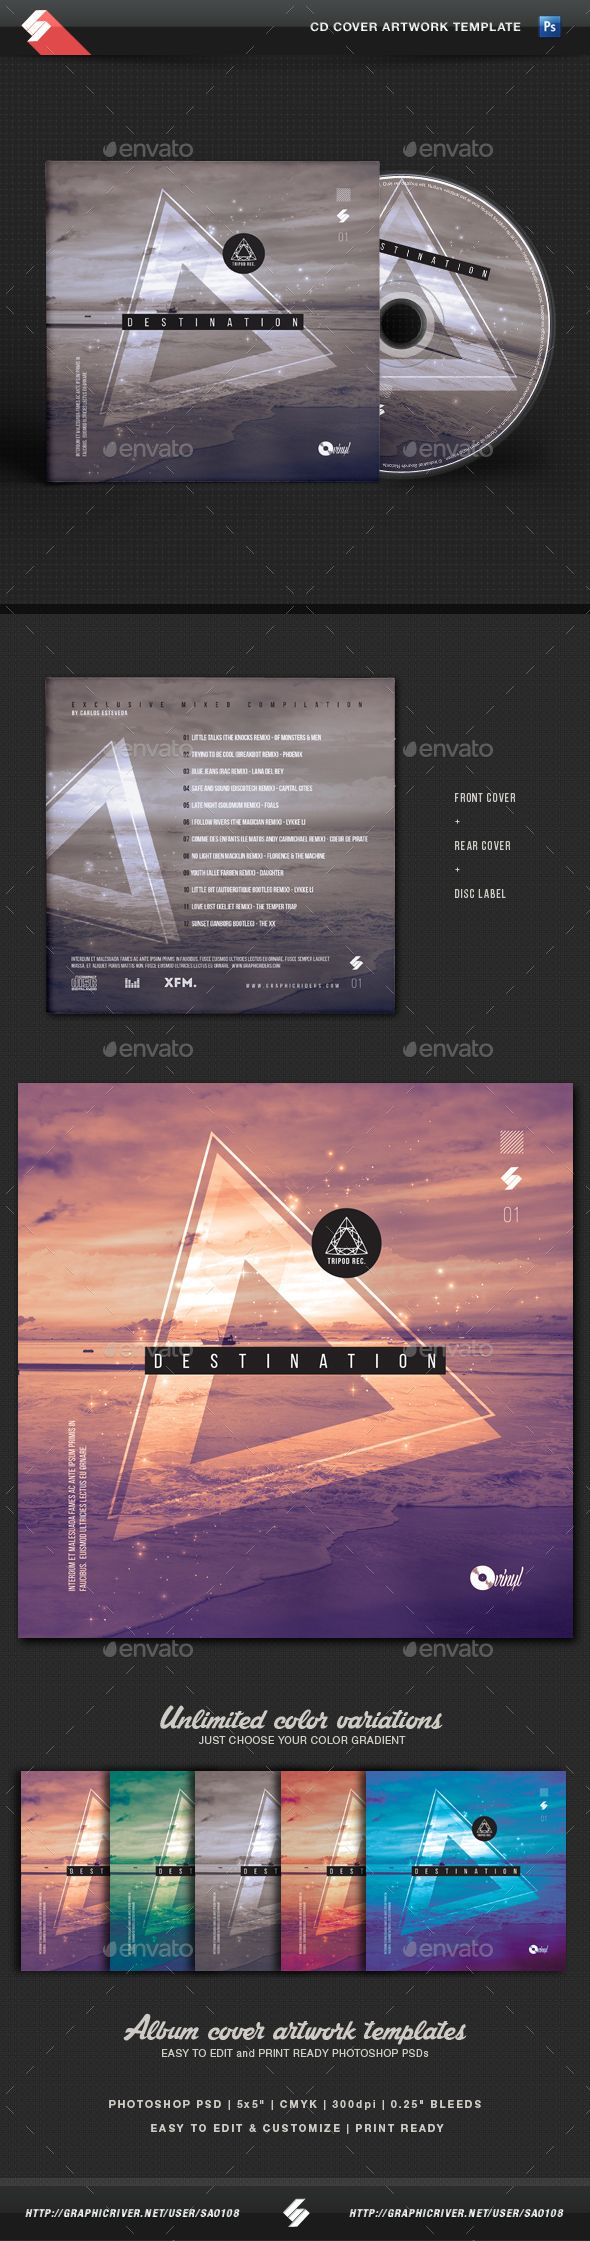 Destination is a minimalistic CD cover artwork for DJs and producents of electronic music like minimal, tech-house, deep house, house music, techno, progressive, dubstep, drum and bass, trance, chillout, ambient, electro, trap, electronica,...etc.  • Only available here ➝ http://graphicriver.net/item/destination-minimal-cd-cover-artwork-template/16488079?ref=pxcr